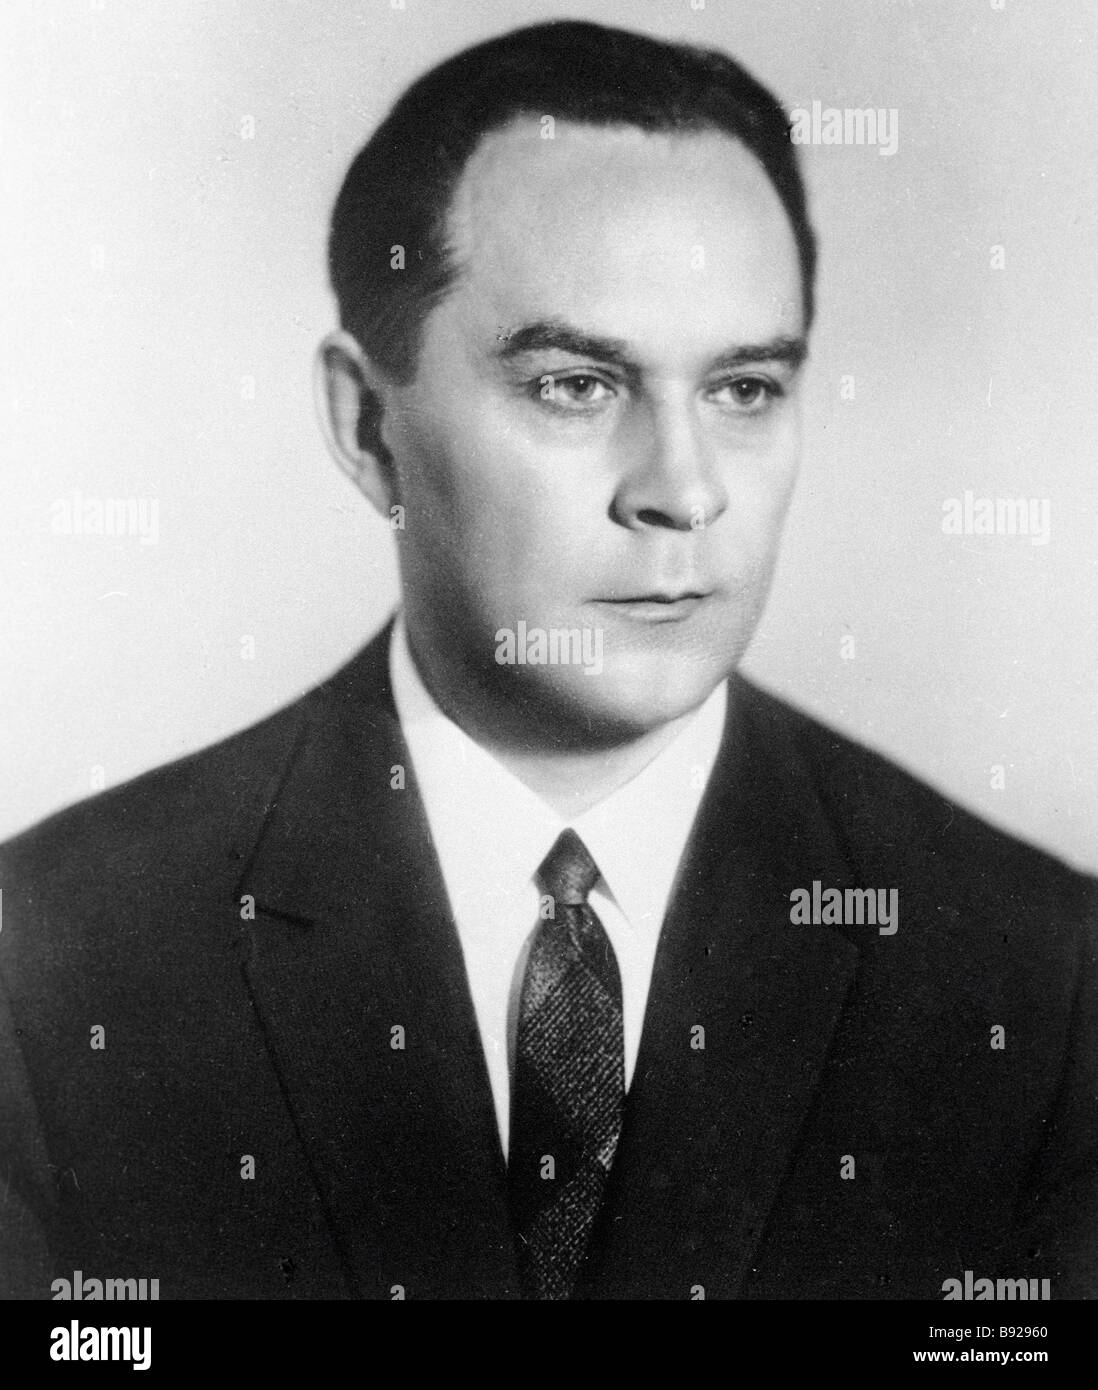 Alexander Shcherbakov, Soviet state and party leader: biography, family 98